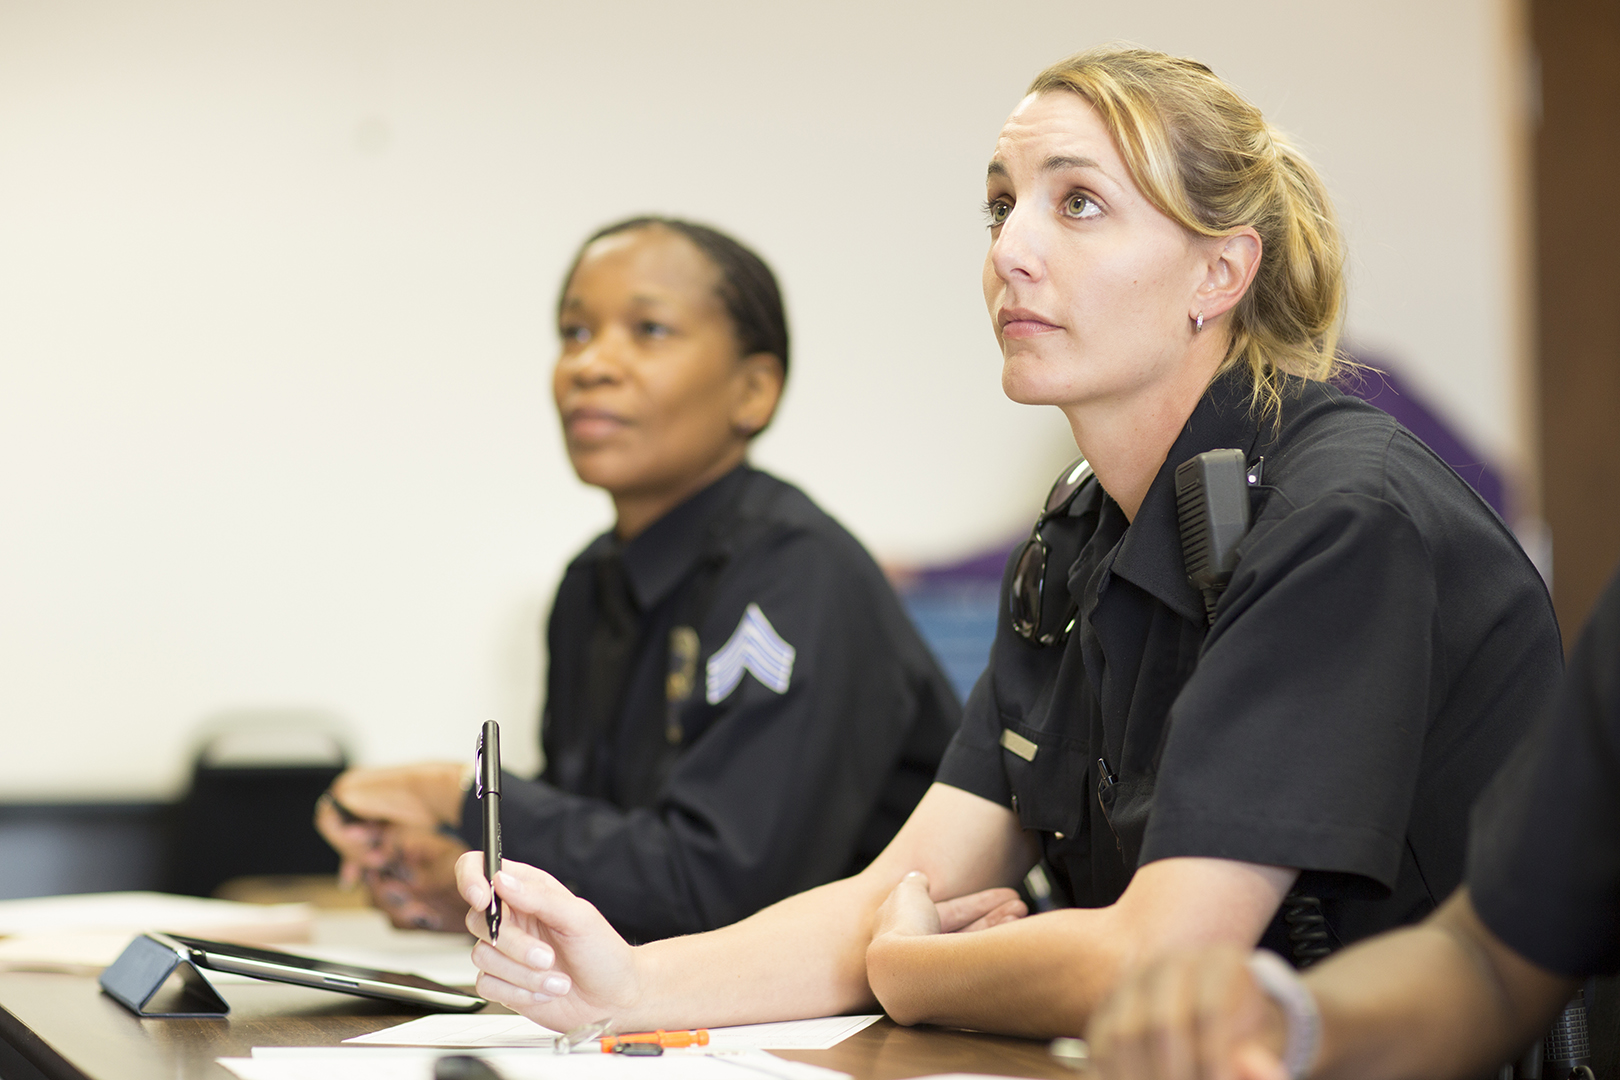 EMERGENCY SERVICES - Policewomen in classroom